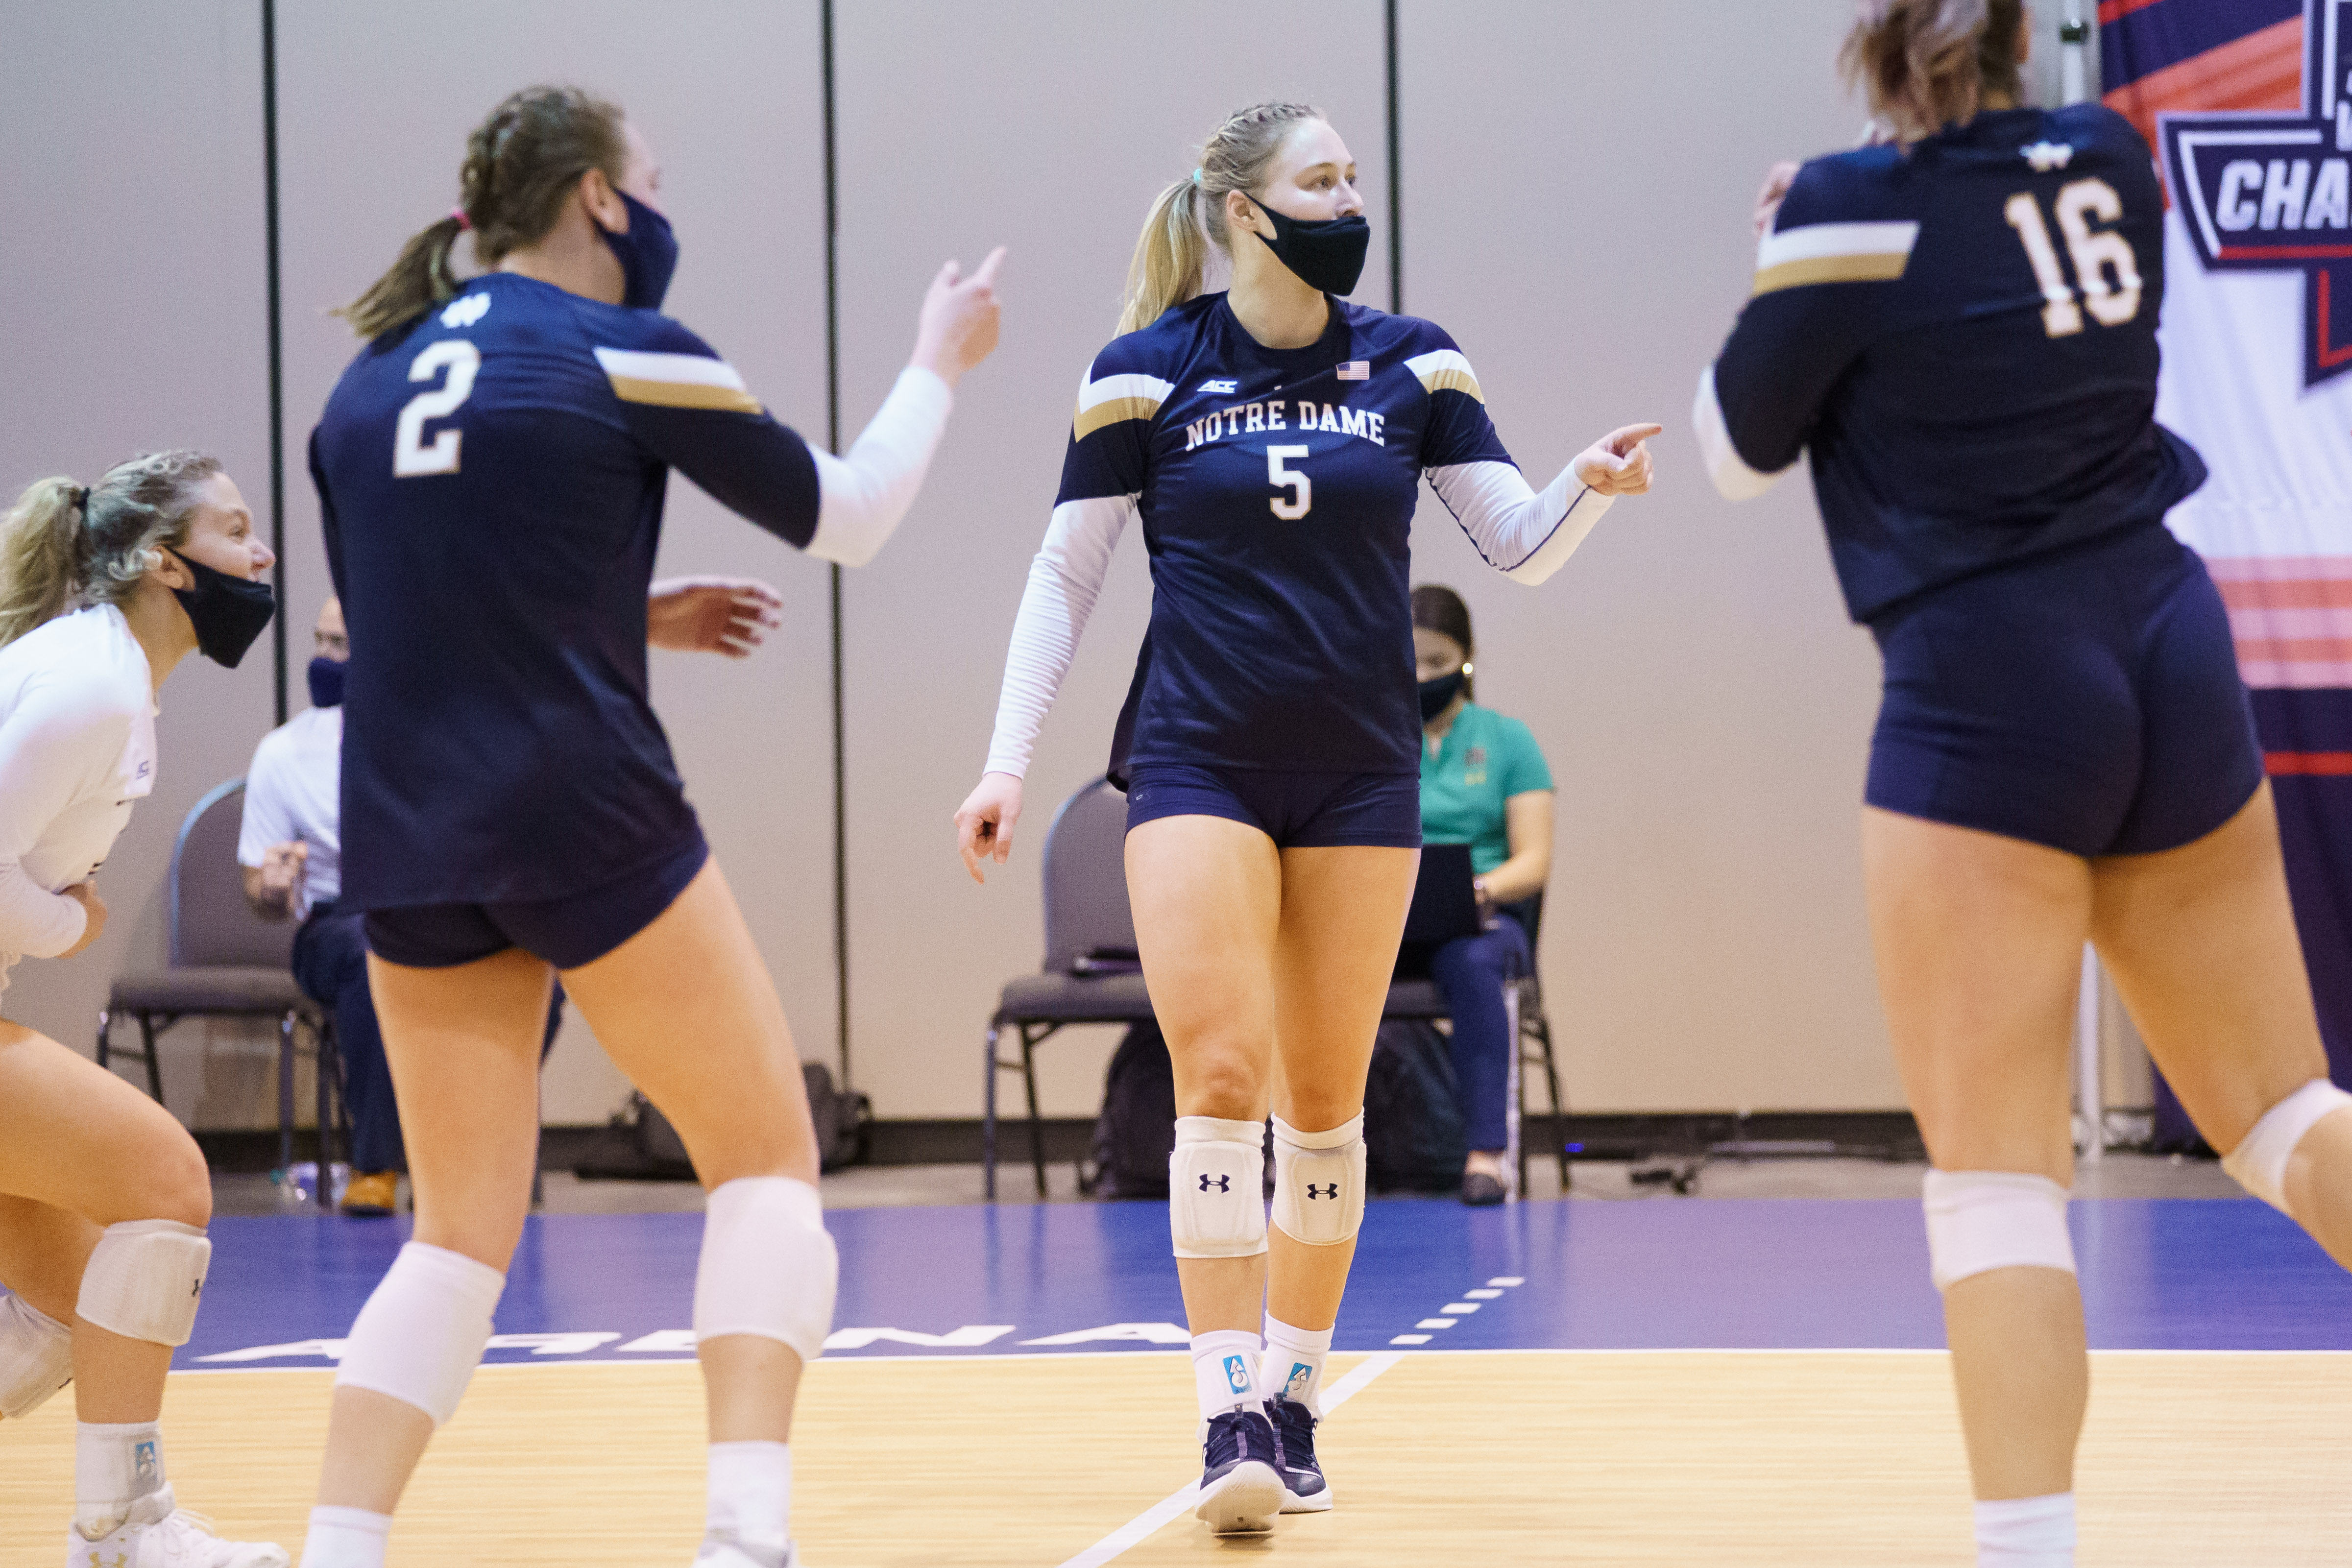 ND Volleyball: Well Rested Ducks, Take Down The Irish